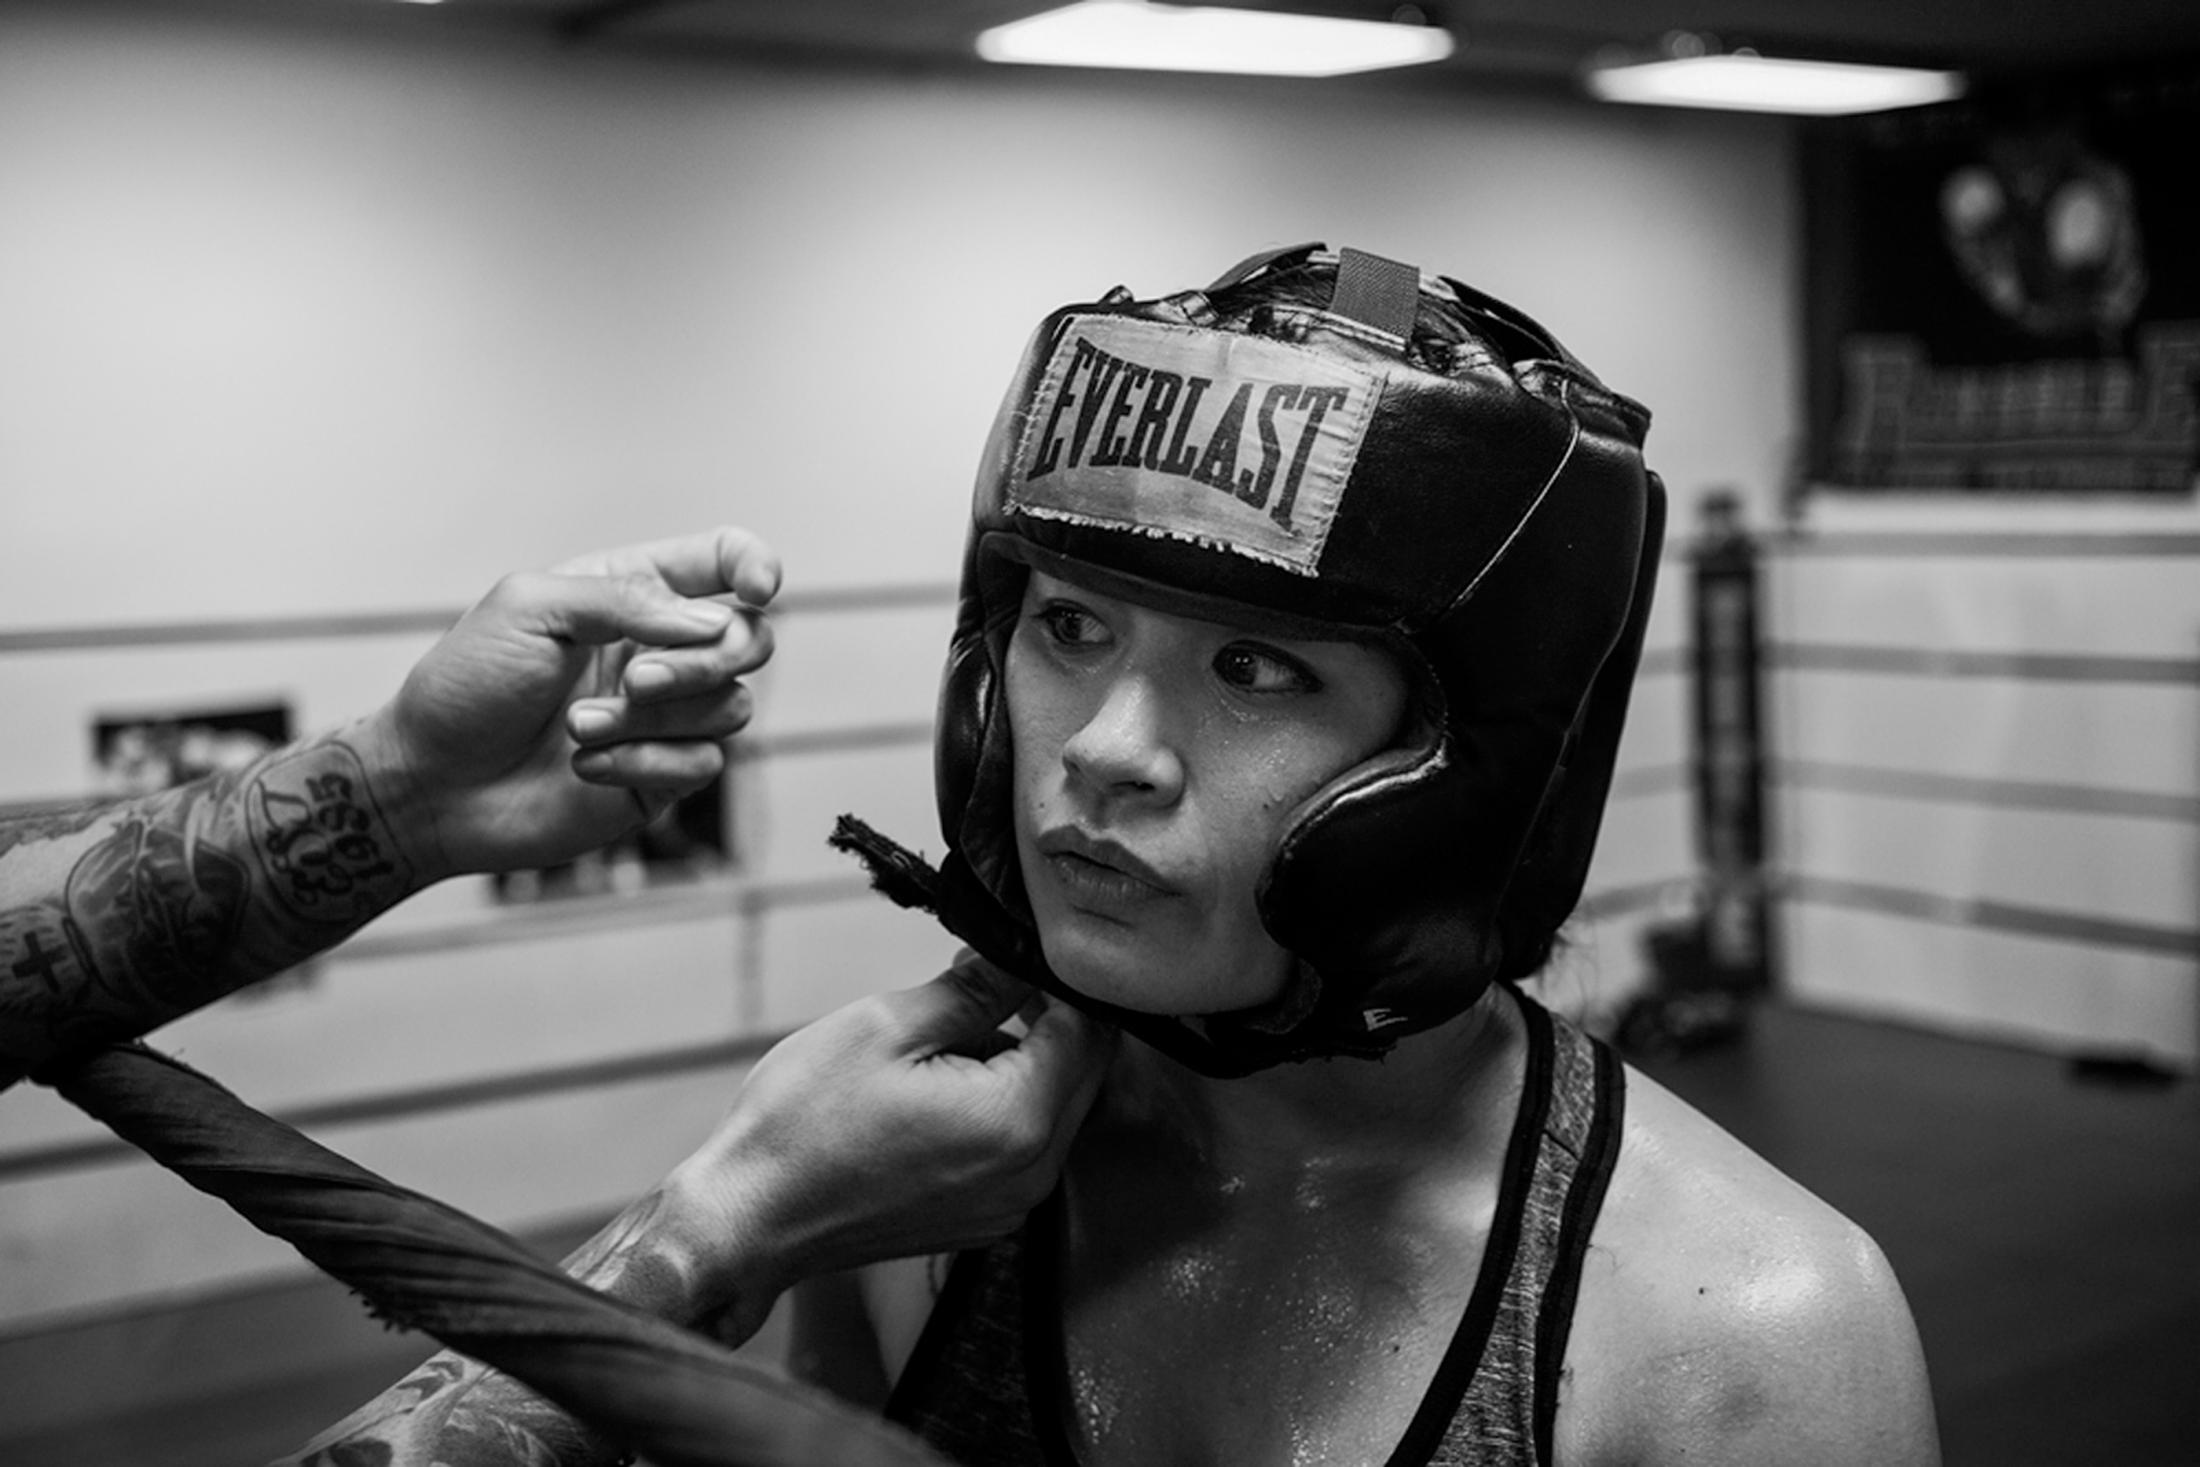 Casey is fitted with a helmet by her full-time coach, Jairo Escobar, before sparring with another female boxer at World Class Boxing Gym in San Francisco, CA.